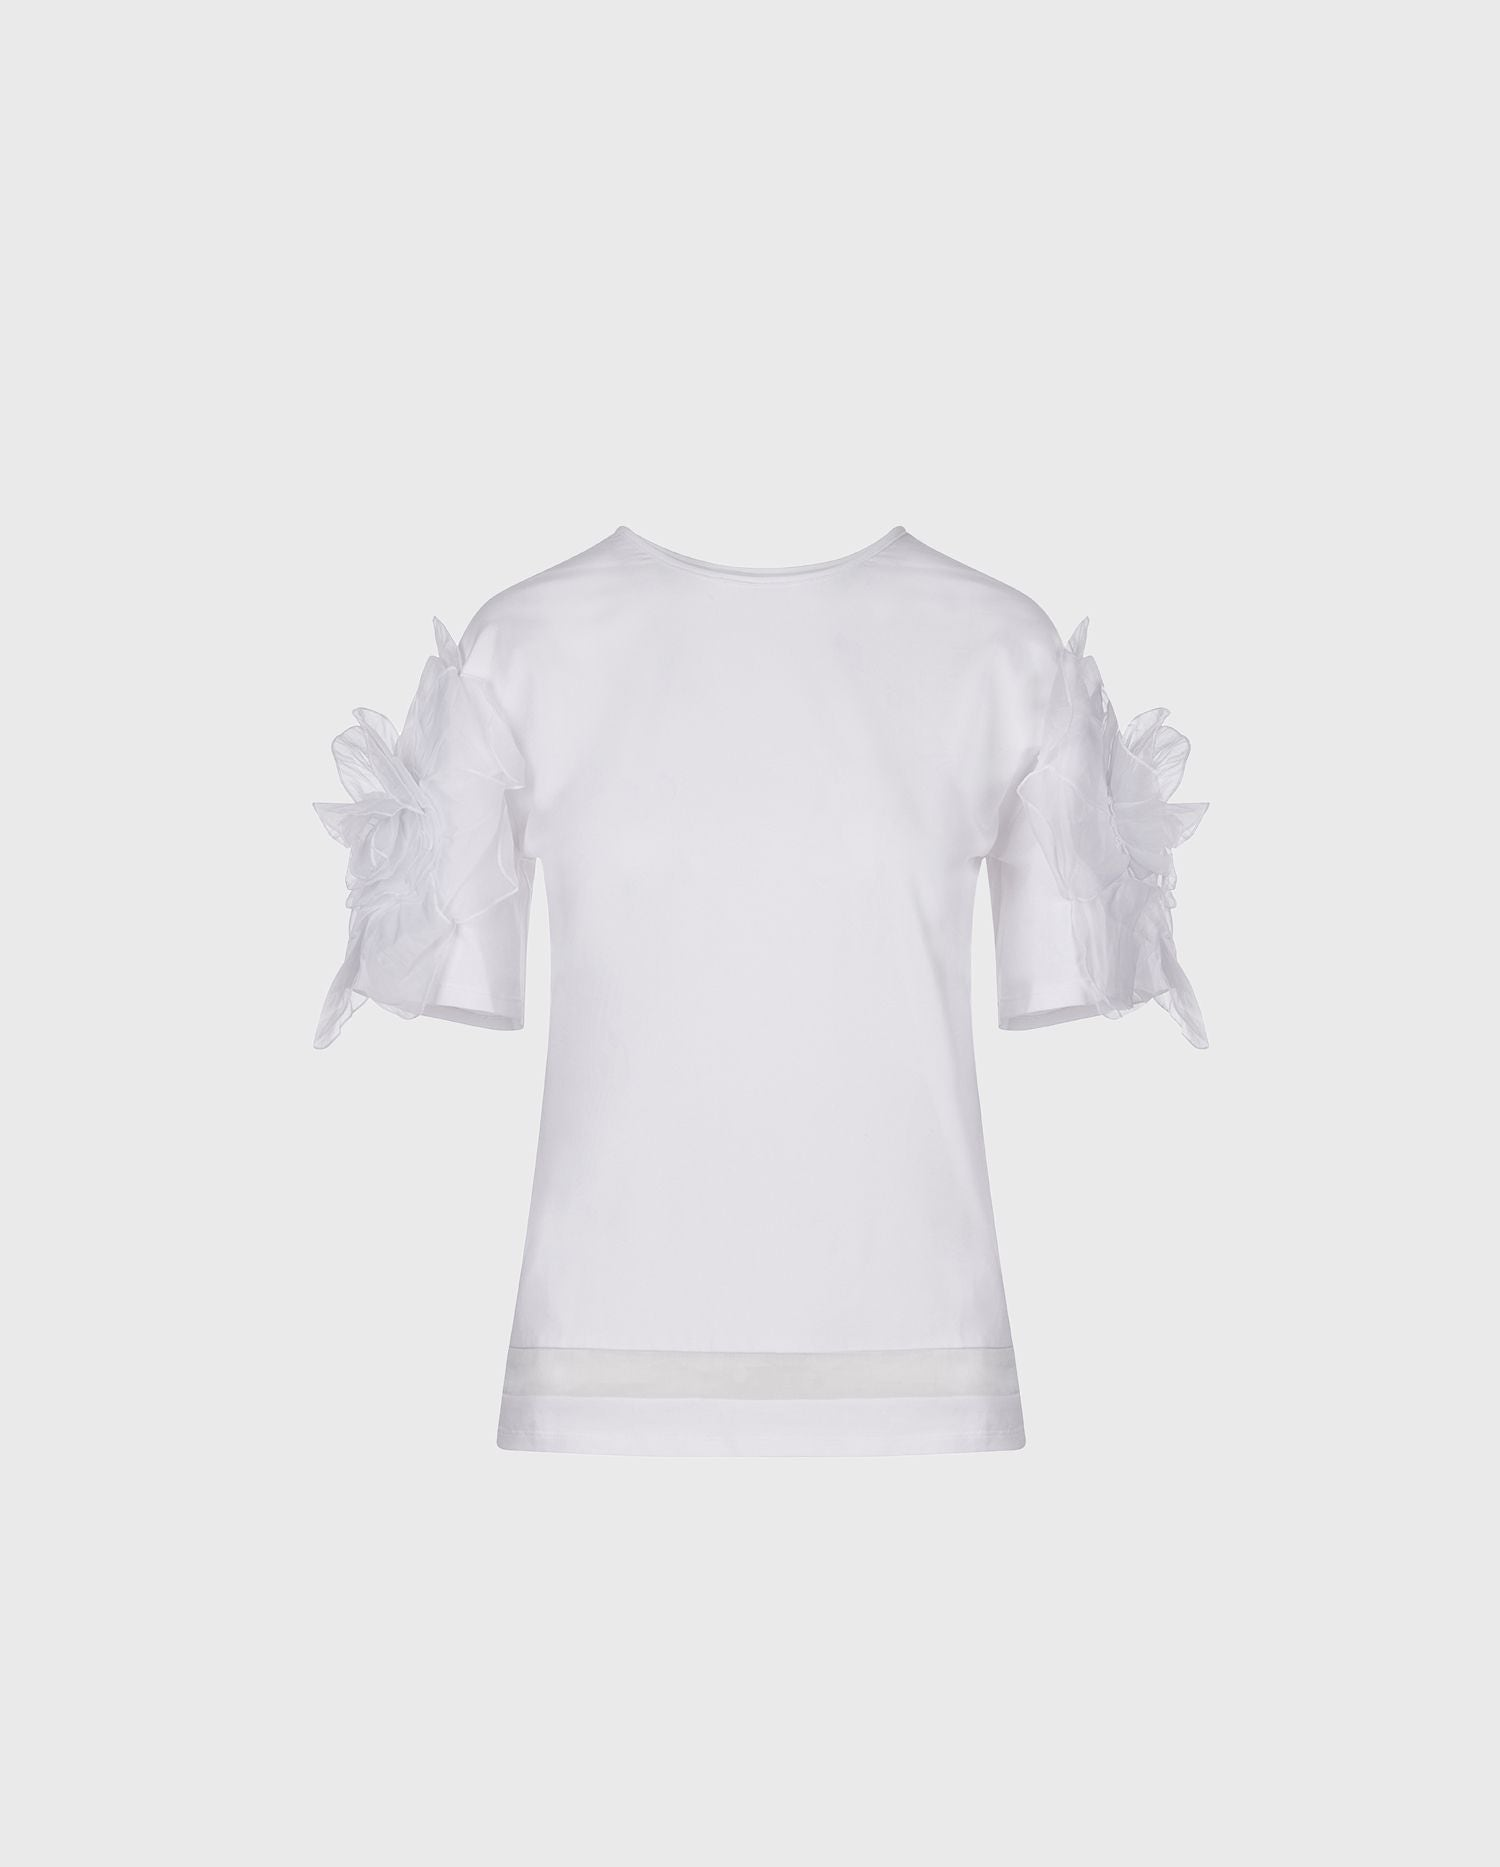 Anne Fontaine Colomba Shirt: White top with a scoop neckline and 3D flowers